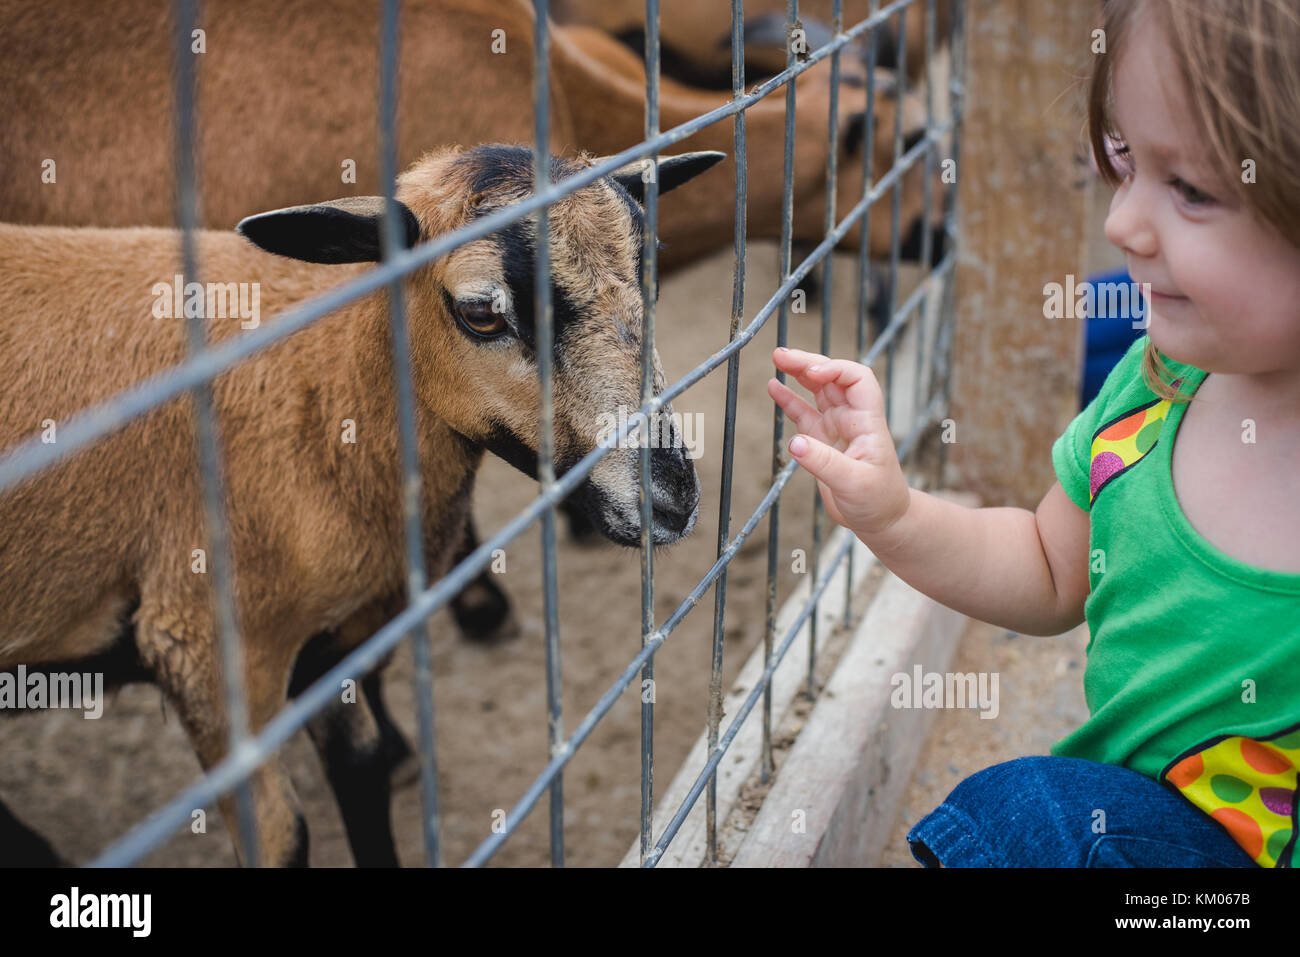 A little girl feeds goats at a petting zoo - Stock Image